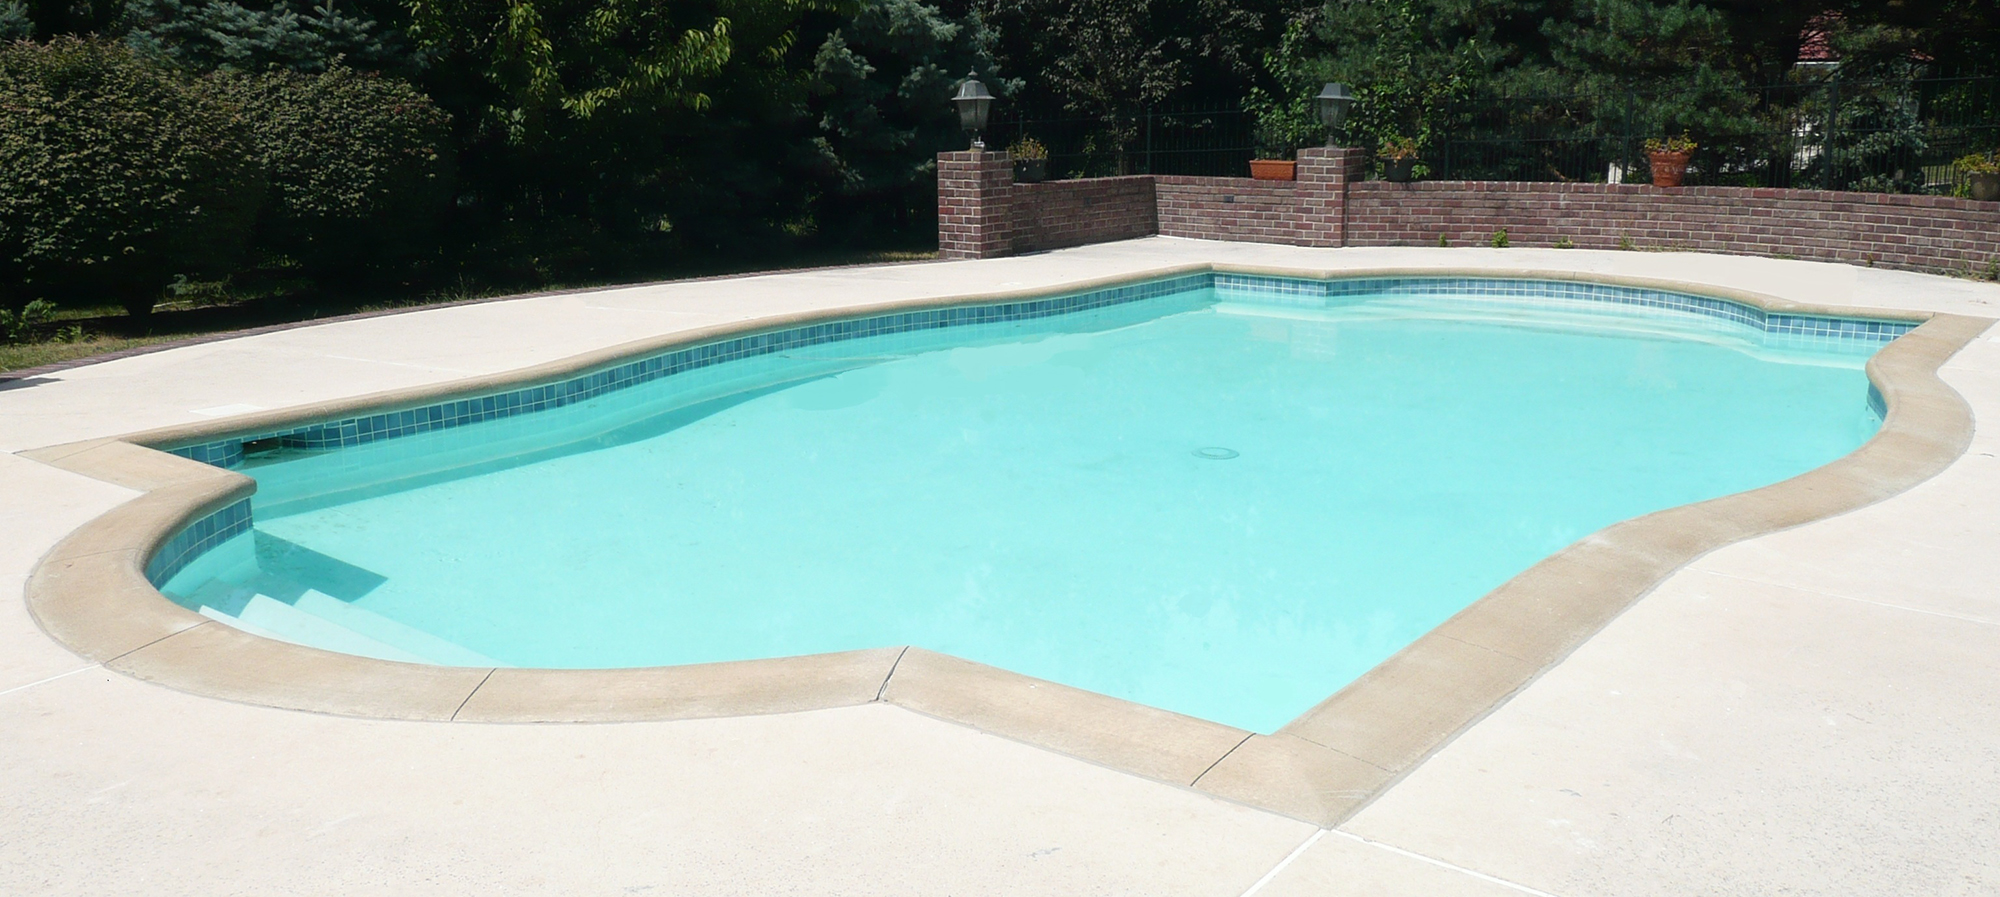 Concrete Pool Deck Design, Repair & Replacement Contractor